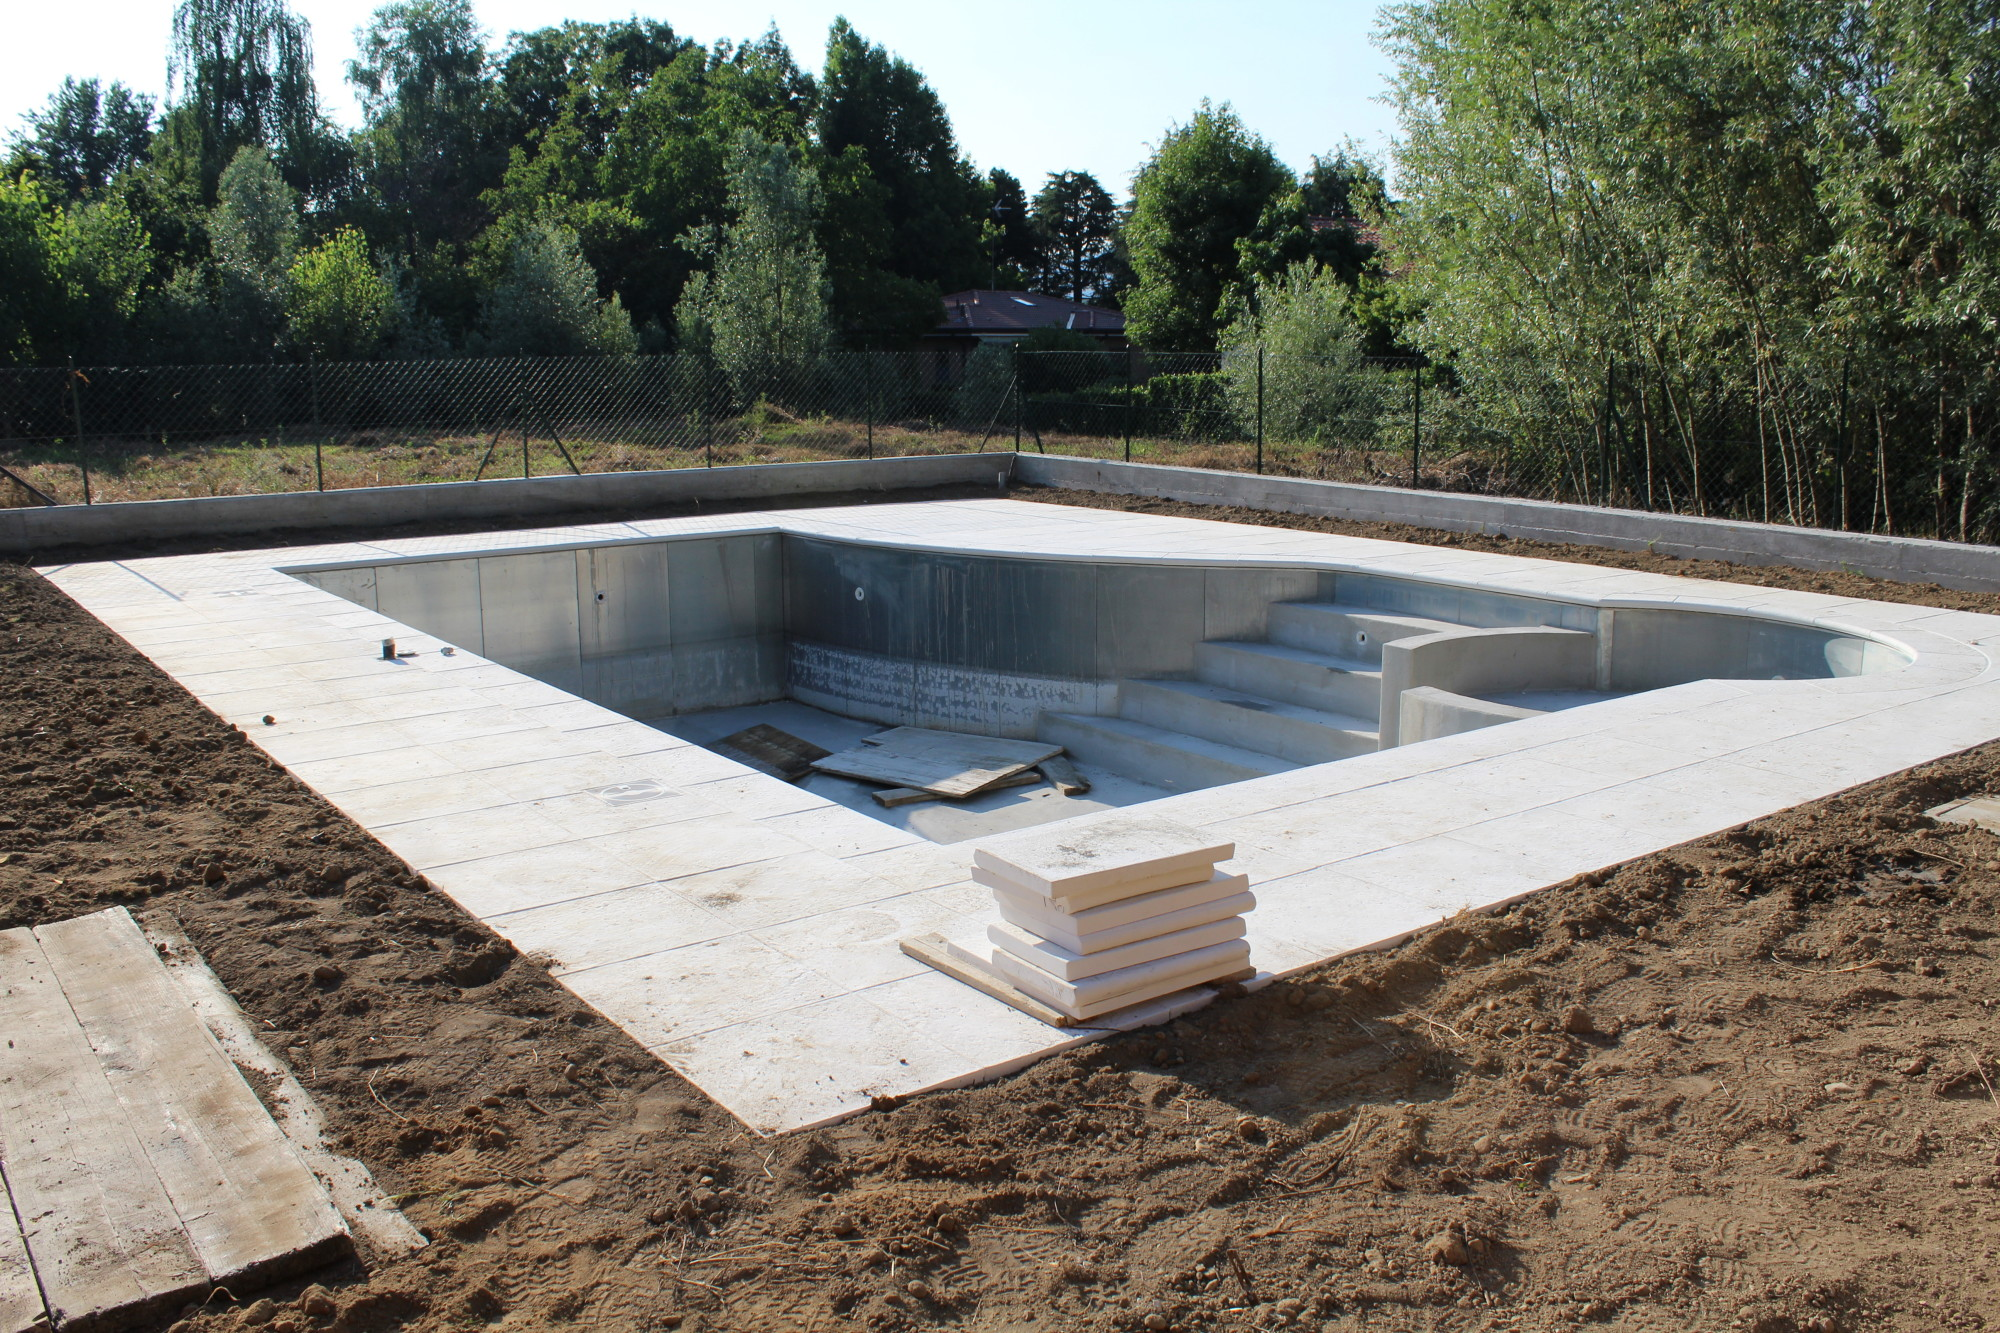 Getting a Pool? Here's 7 Qualities to Look for in Your Pool Contractors